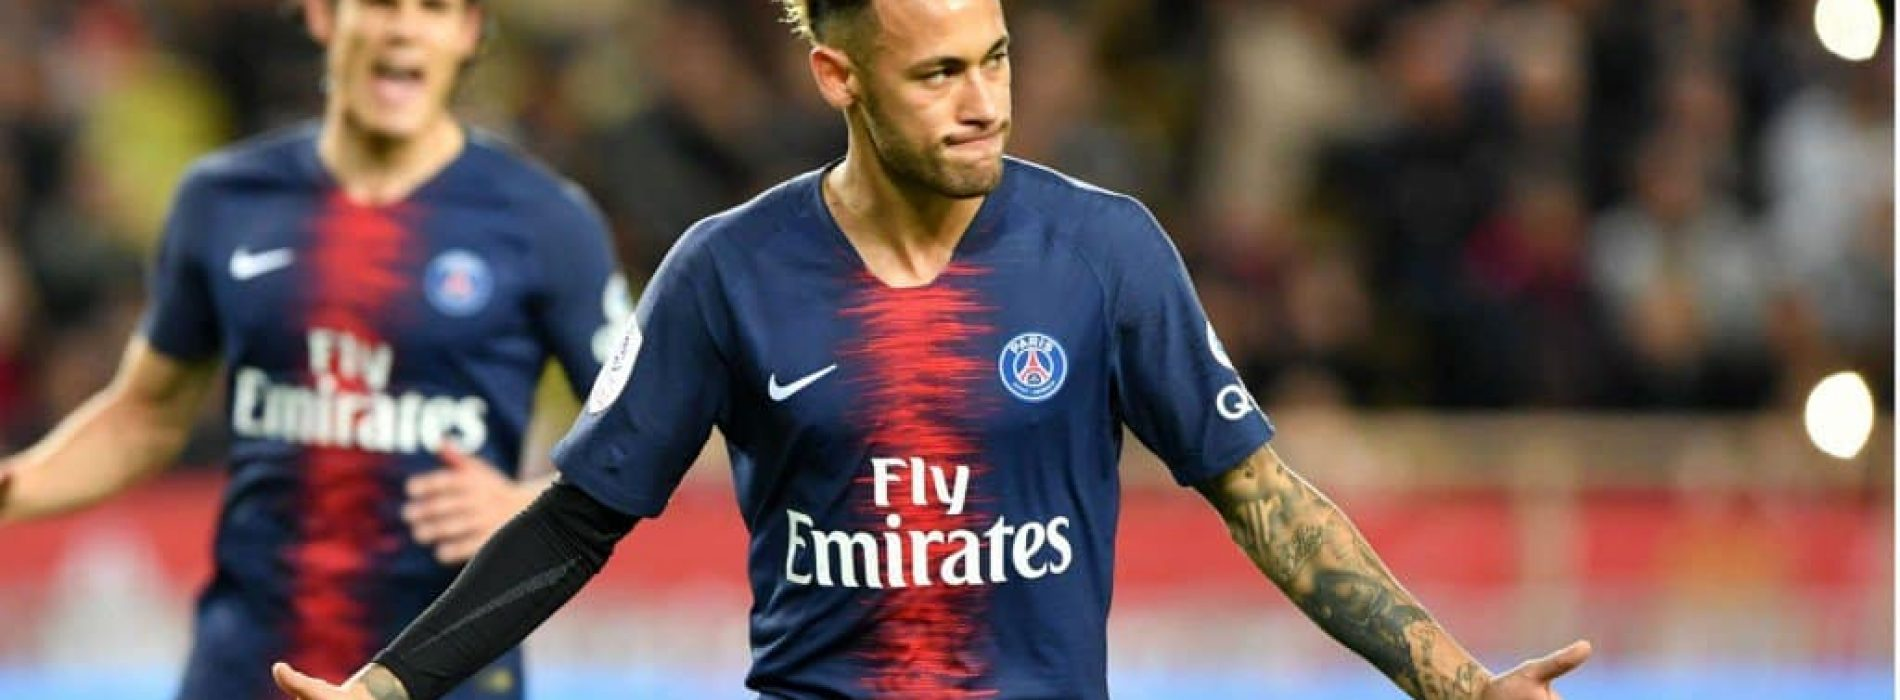 D'Oltremanica: Manchester United pronto a fare follie per Neymar